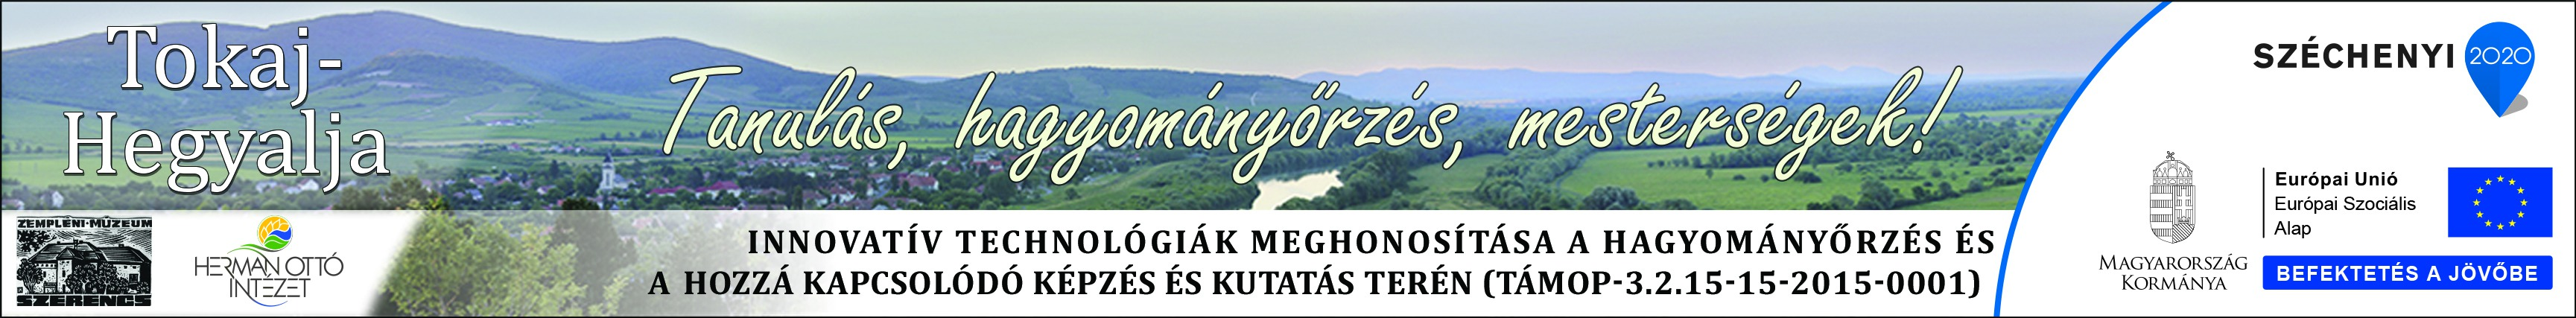 banner fekvo